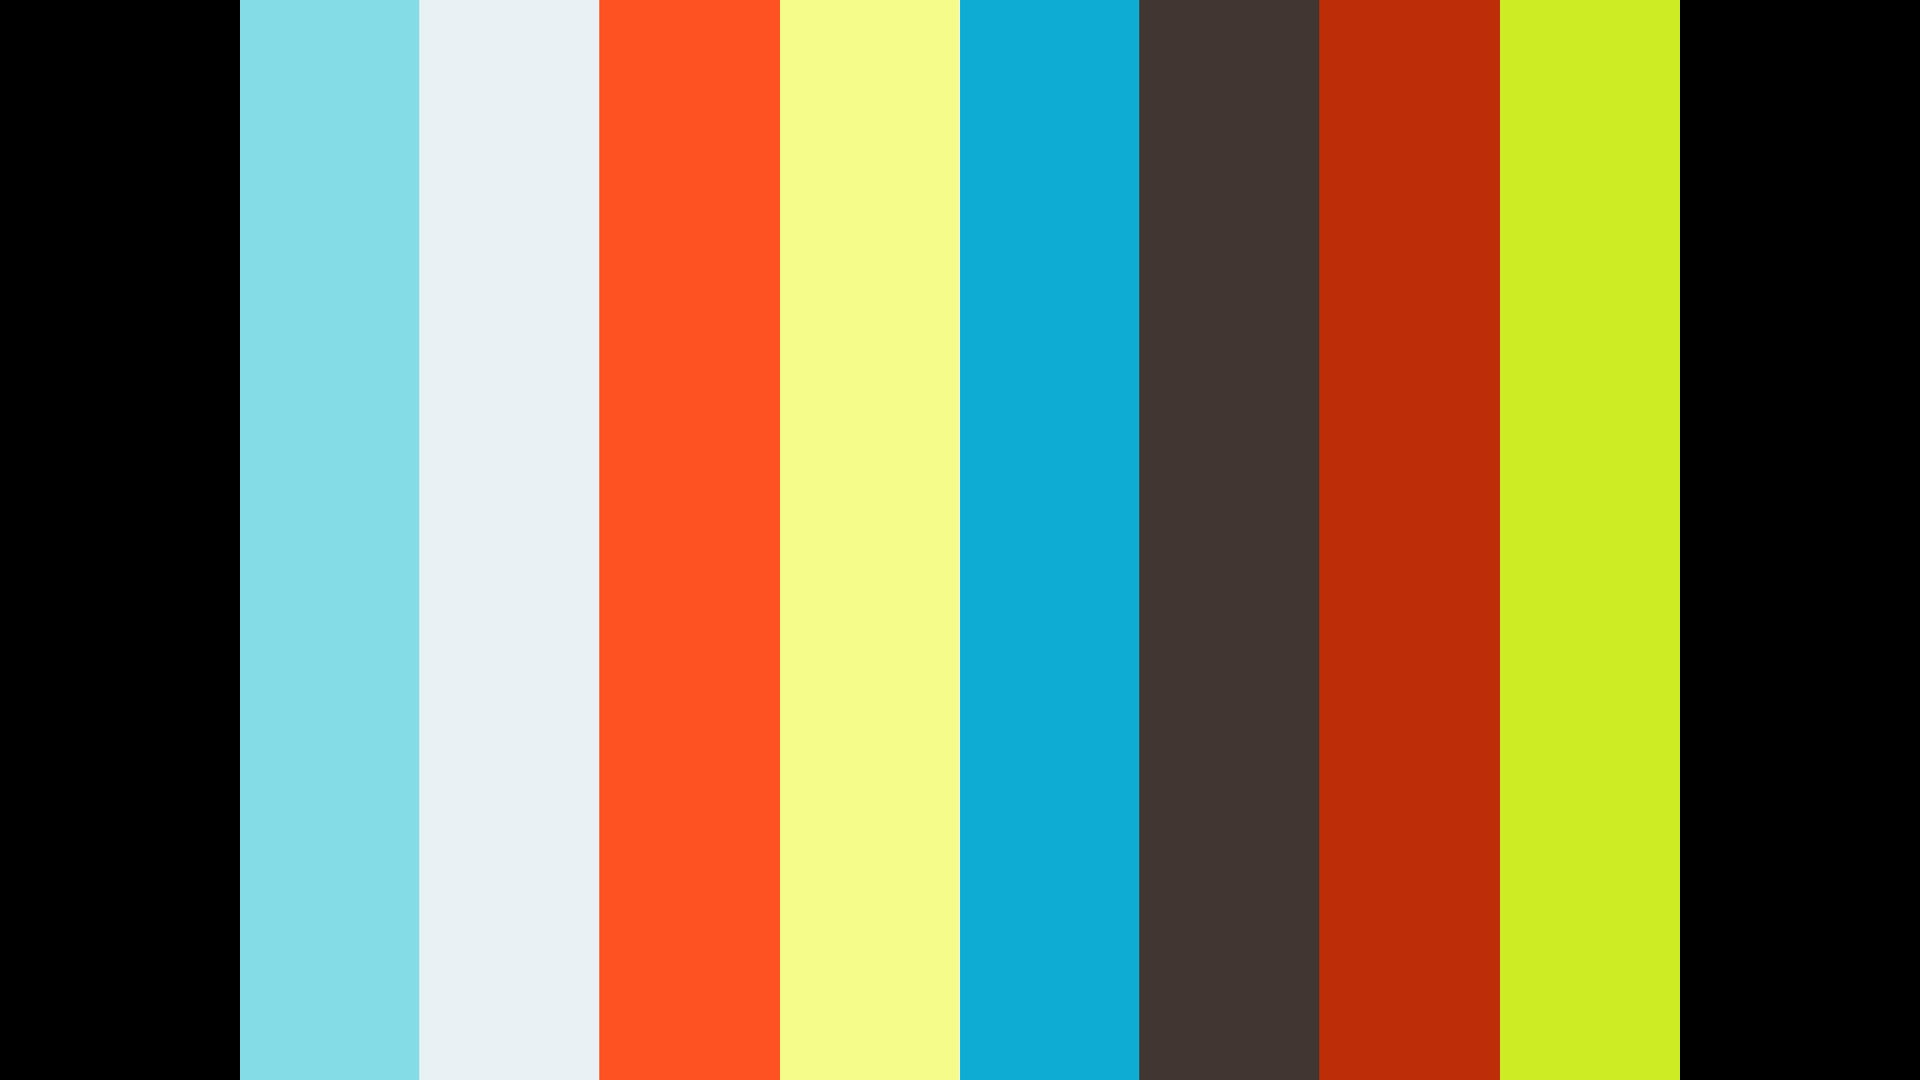 Interview: Geoff Evans, Human Resources Consultant